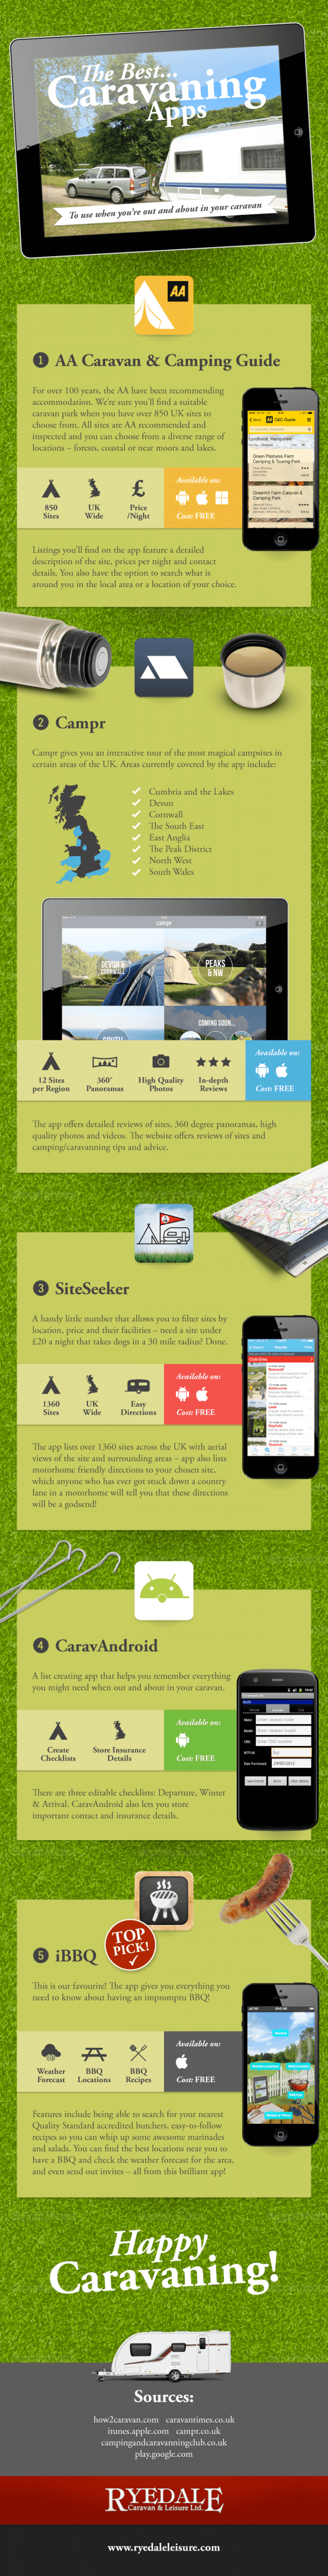 The 5 Best Caravanning Apps Infographic